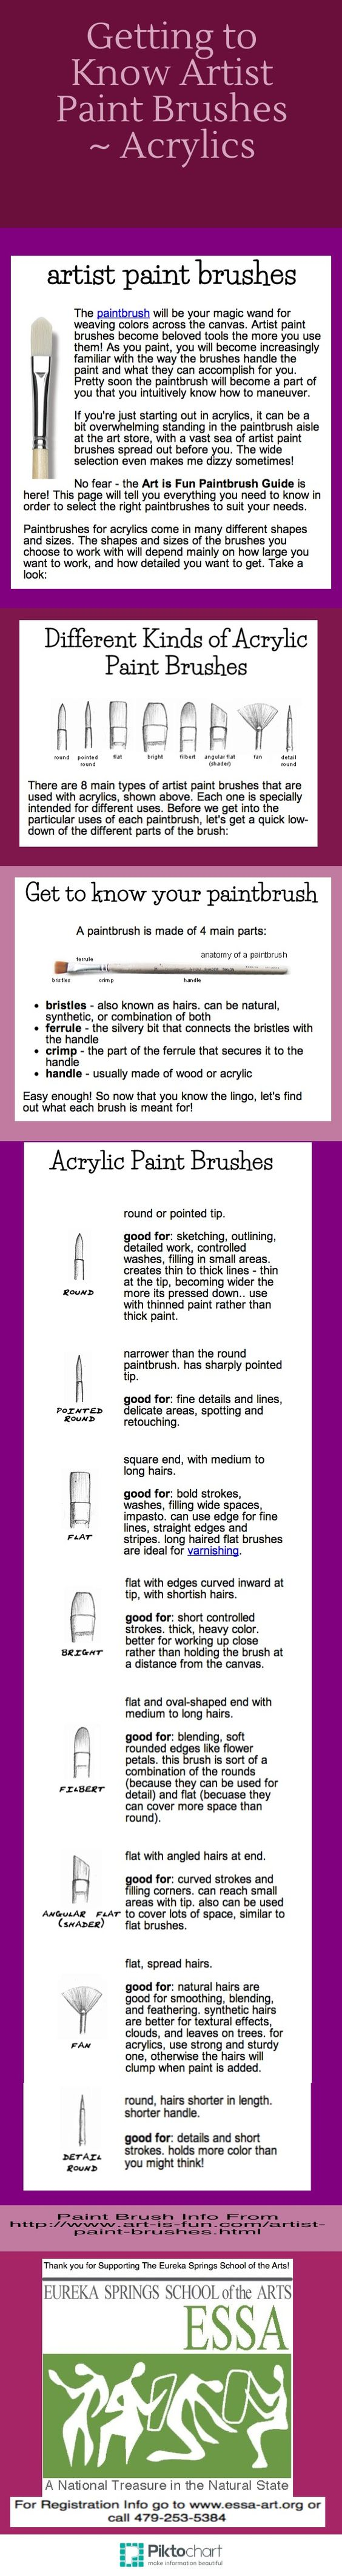 Great Tips on Getting to Know Acrylic Paint Brushes From http://www.art-is-fun.com/artist-paint-brushes.html